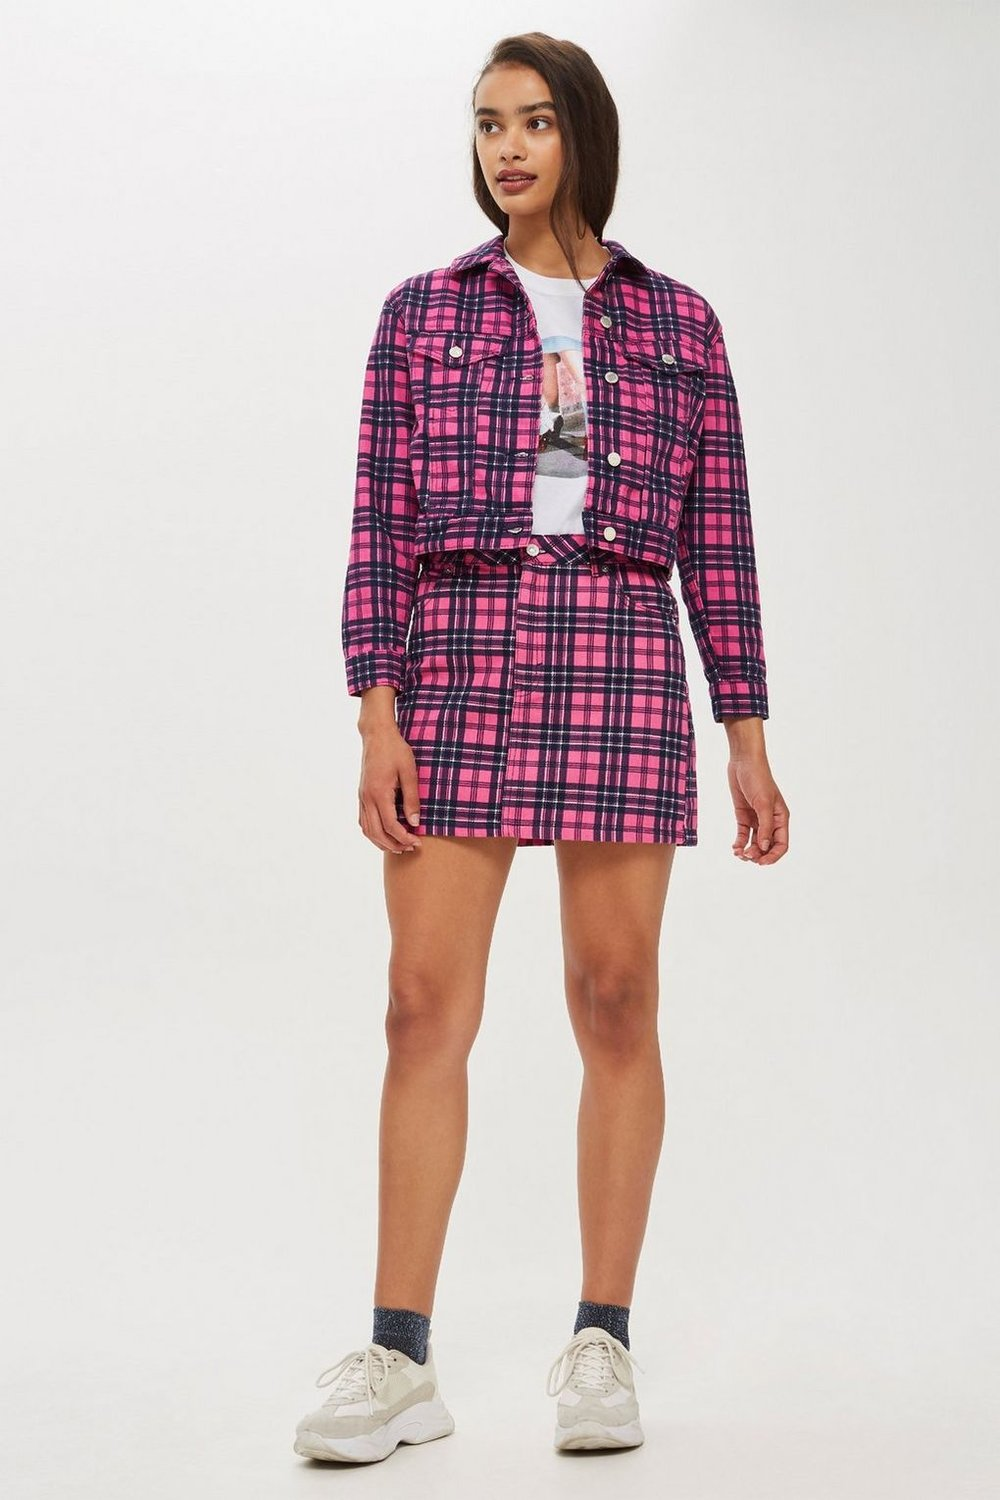 http://www.topshop.com/en/tsuk/product/clothing-427/trend-check-you-out-7909667/pink-check-denim-skirt-7879184